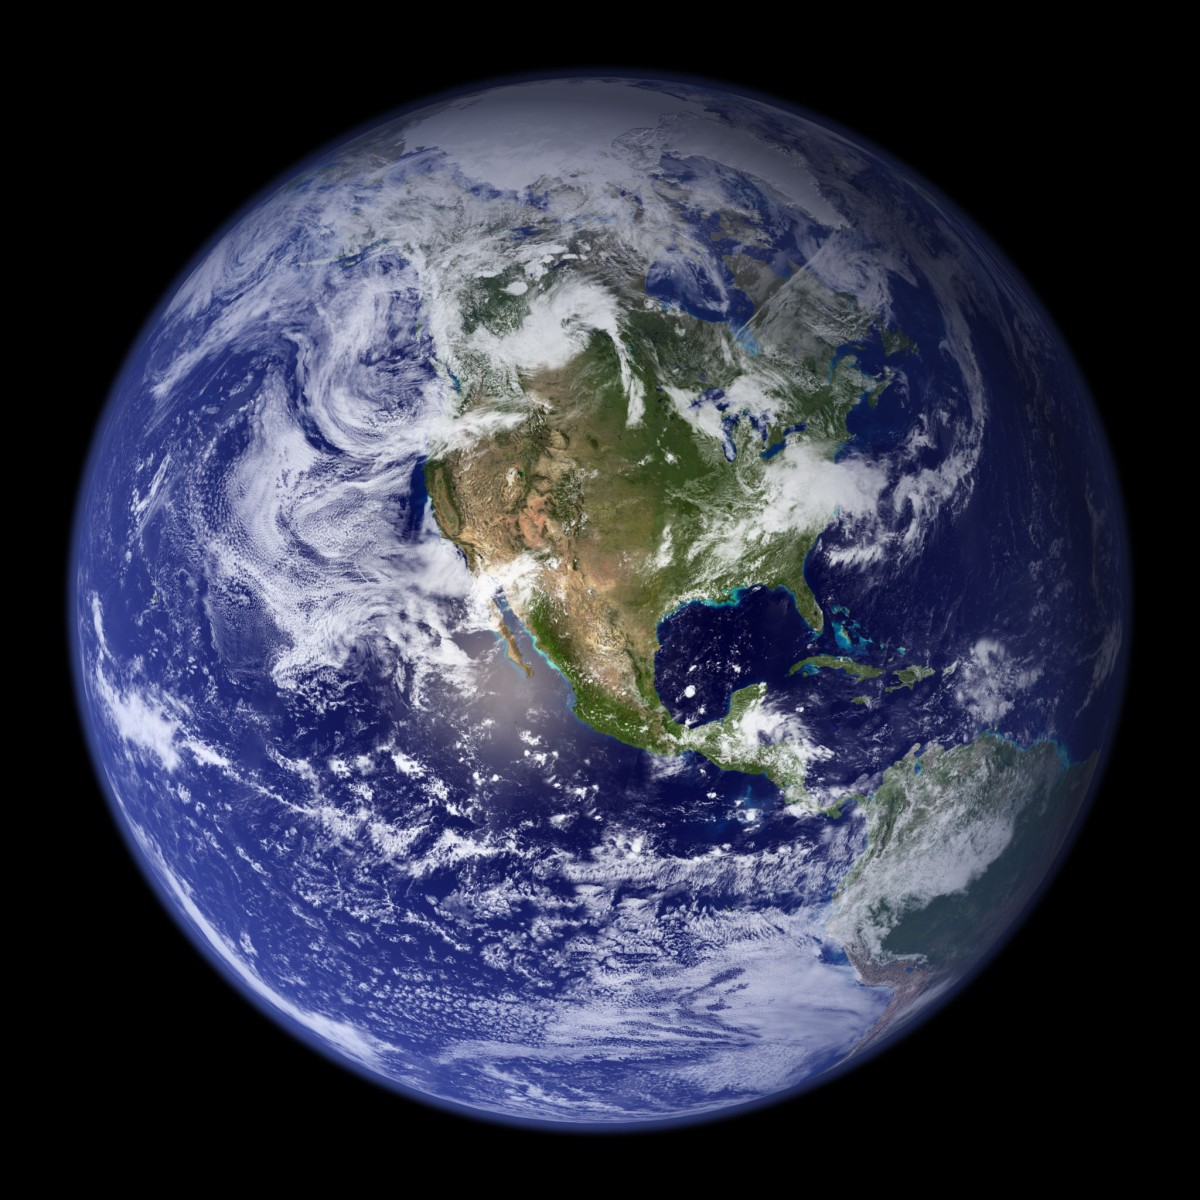 Earth photographed from space